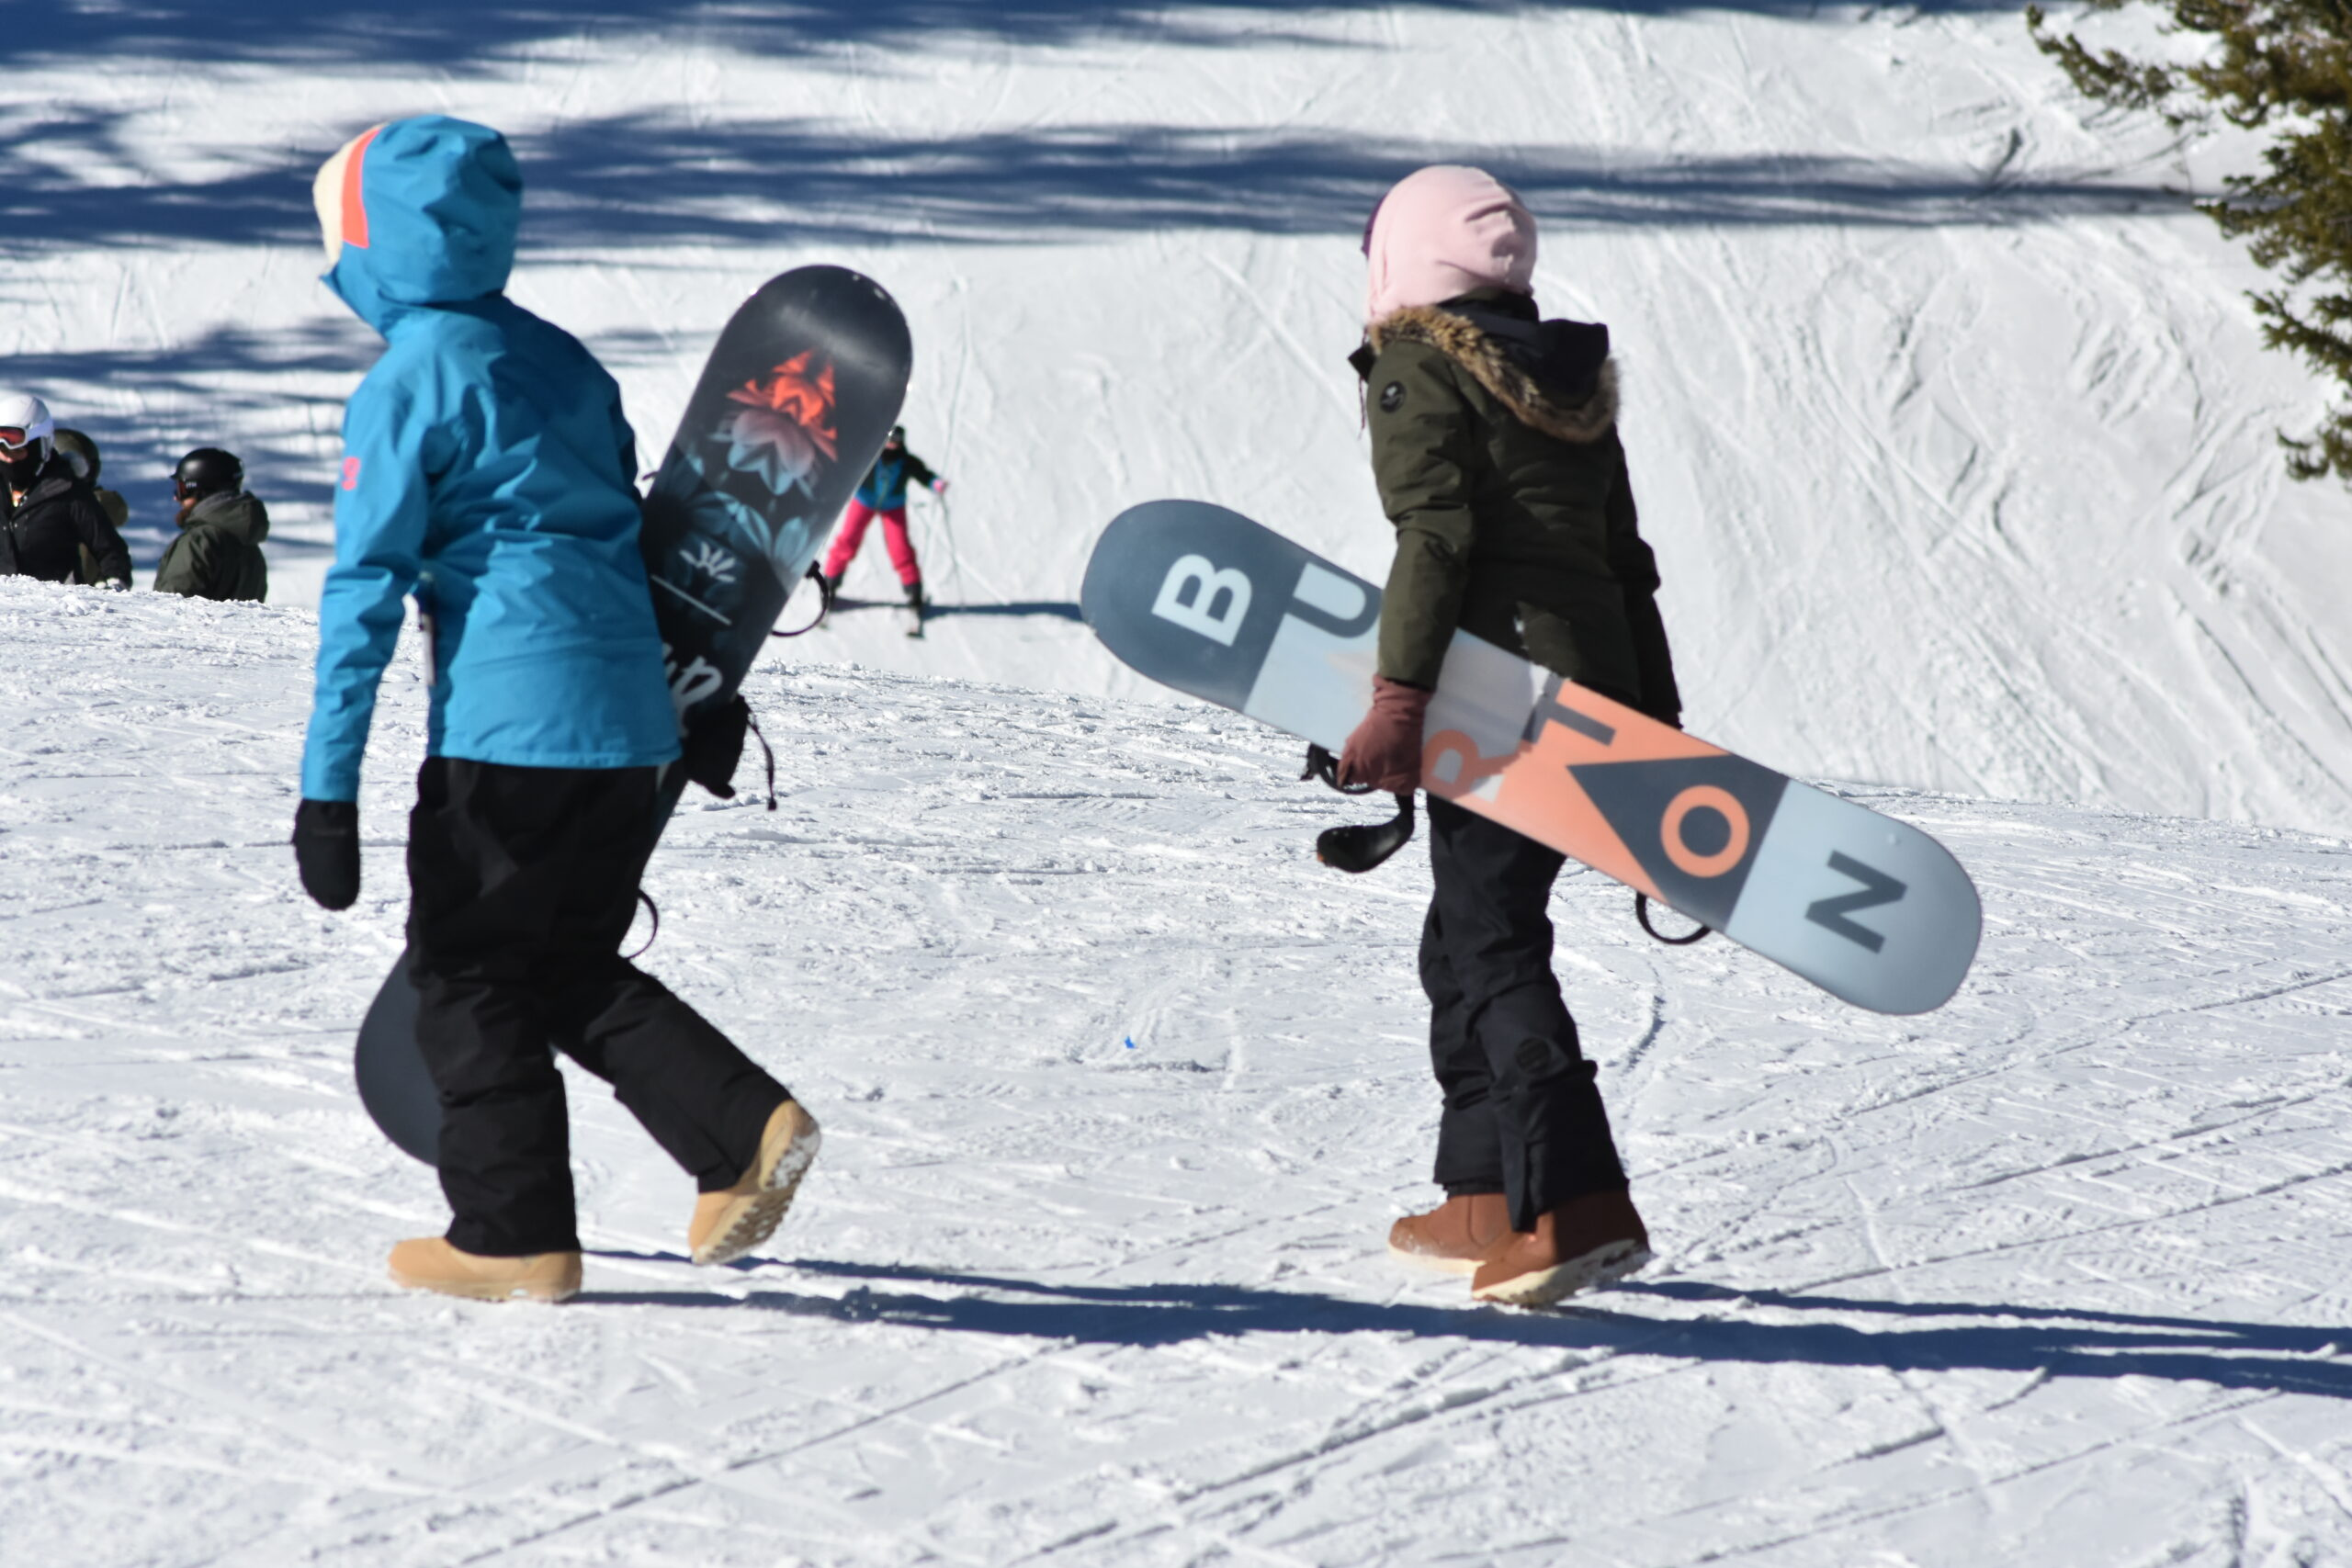 Snowboarders at Anthony Lkaes Mountain Resort in Baker County Oregon